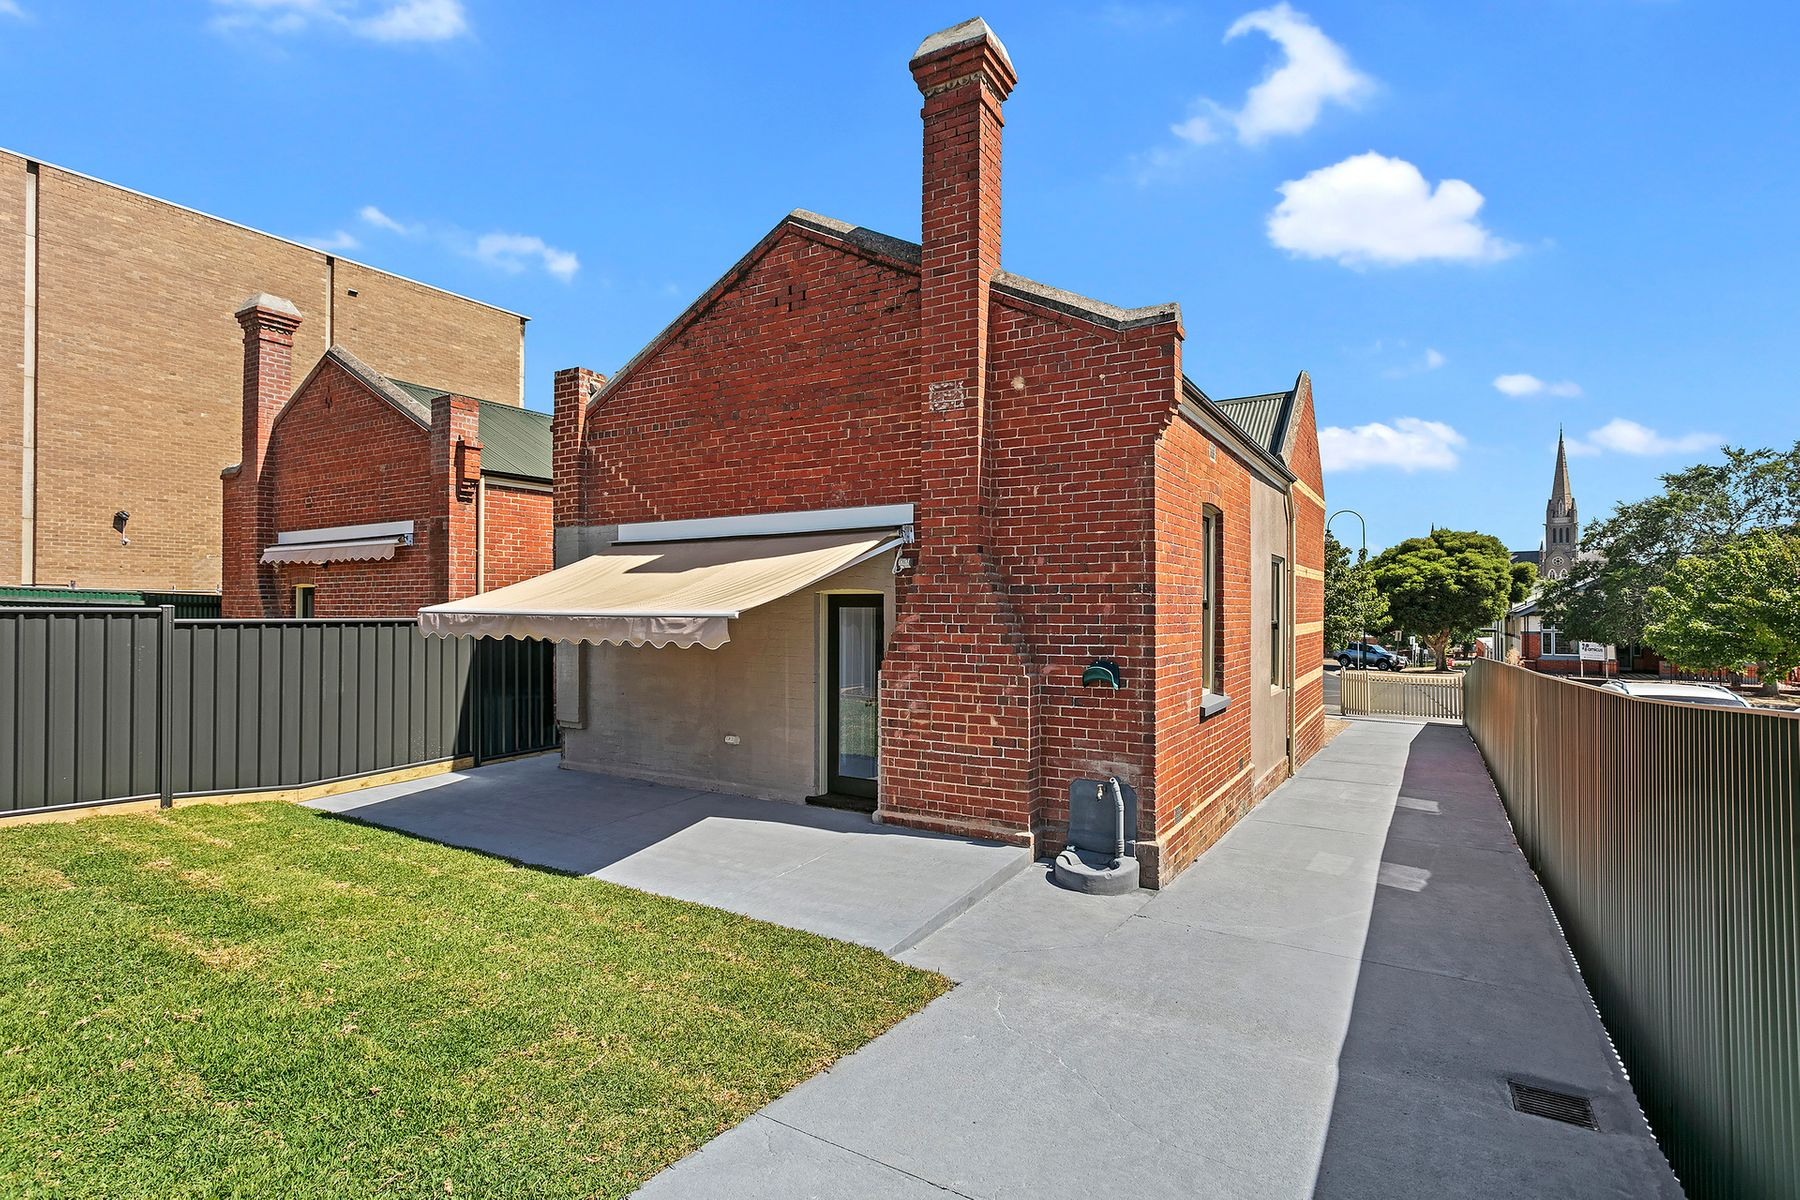 101 Queen Street, Bendigo, VIC 3550